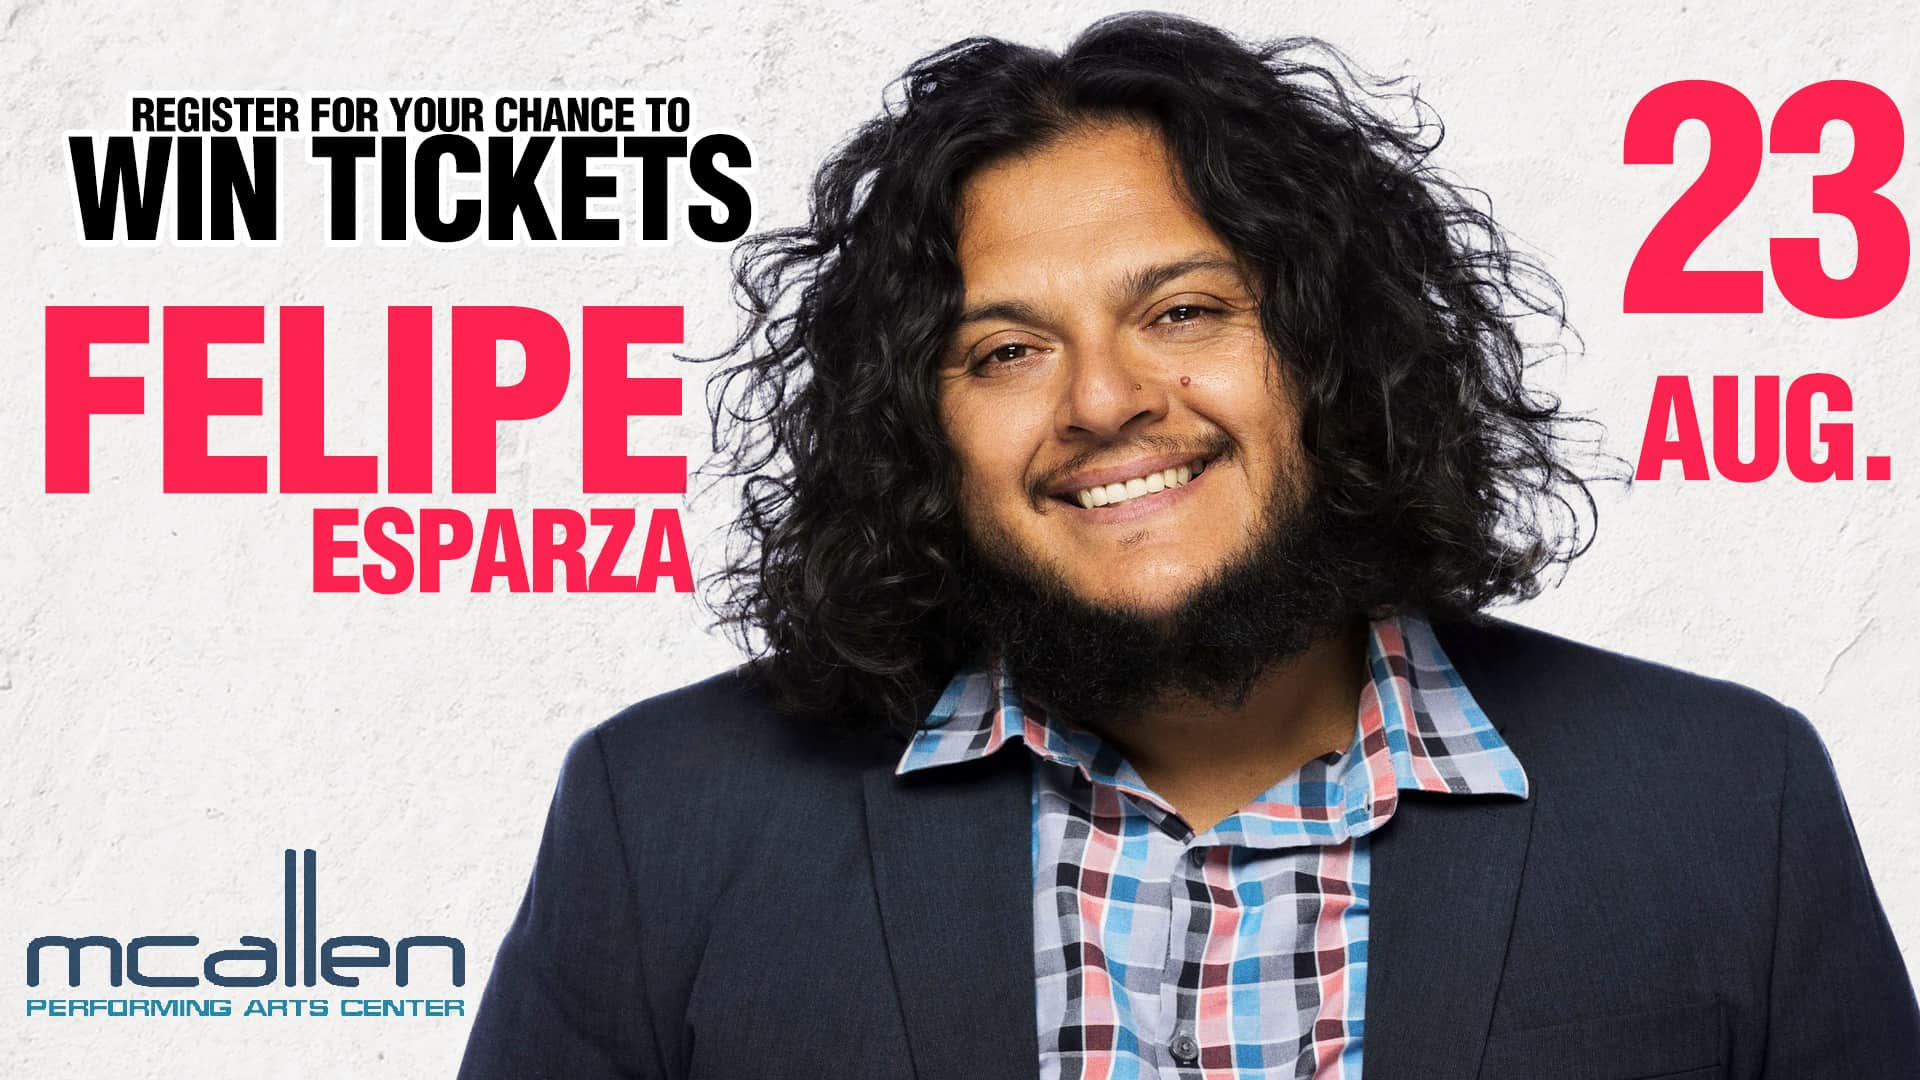 Register for your chance to win tickets to See Felipe Esparza